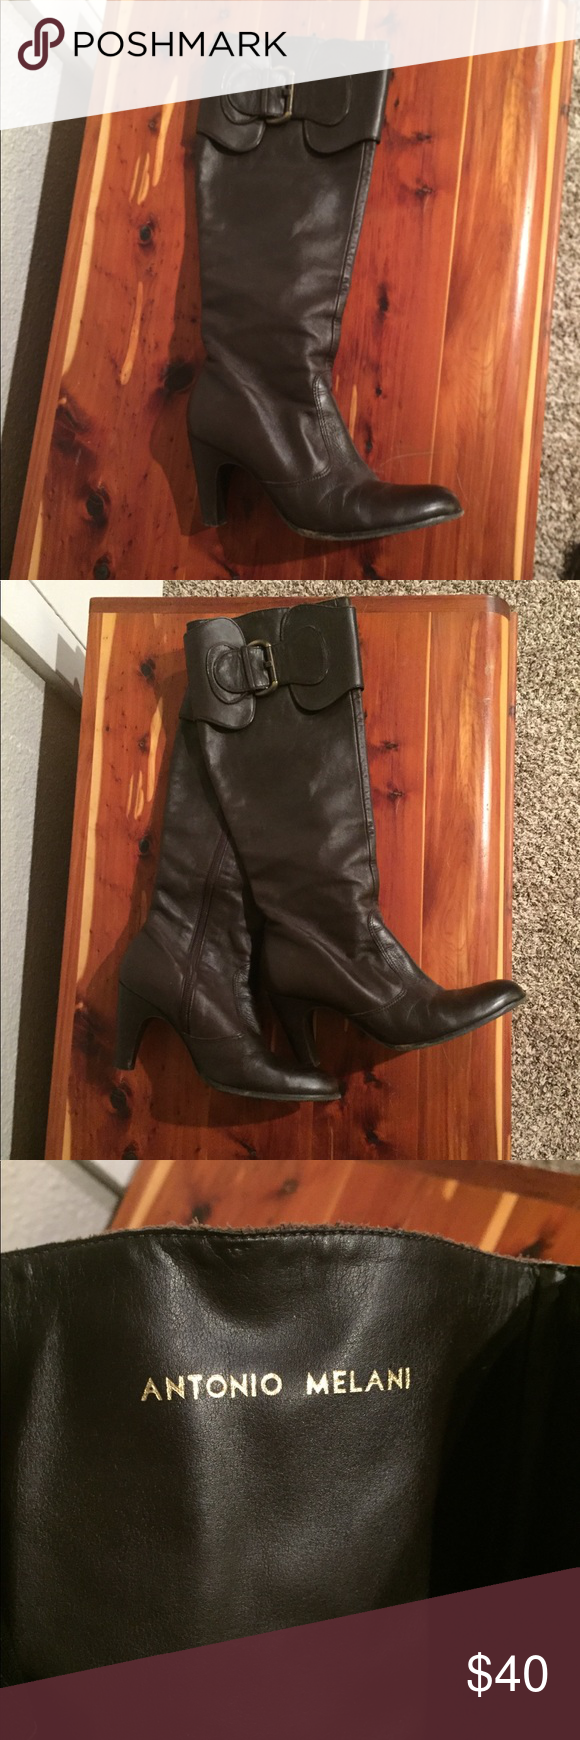 Antonio Melani Heeled Boots With Images Heeled Boots Boots Leather